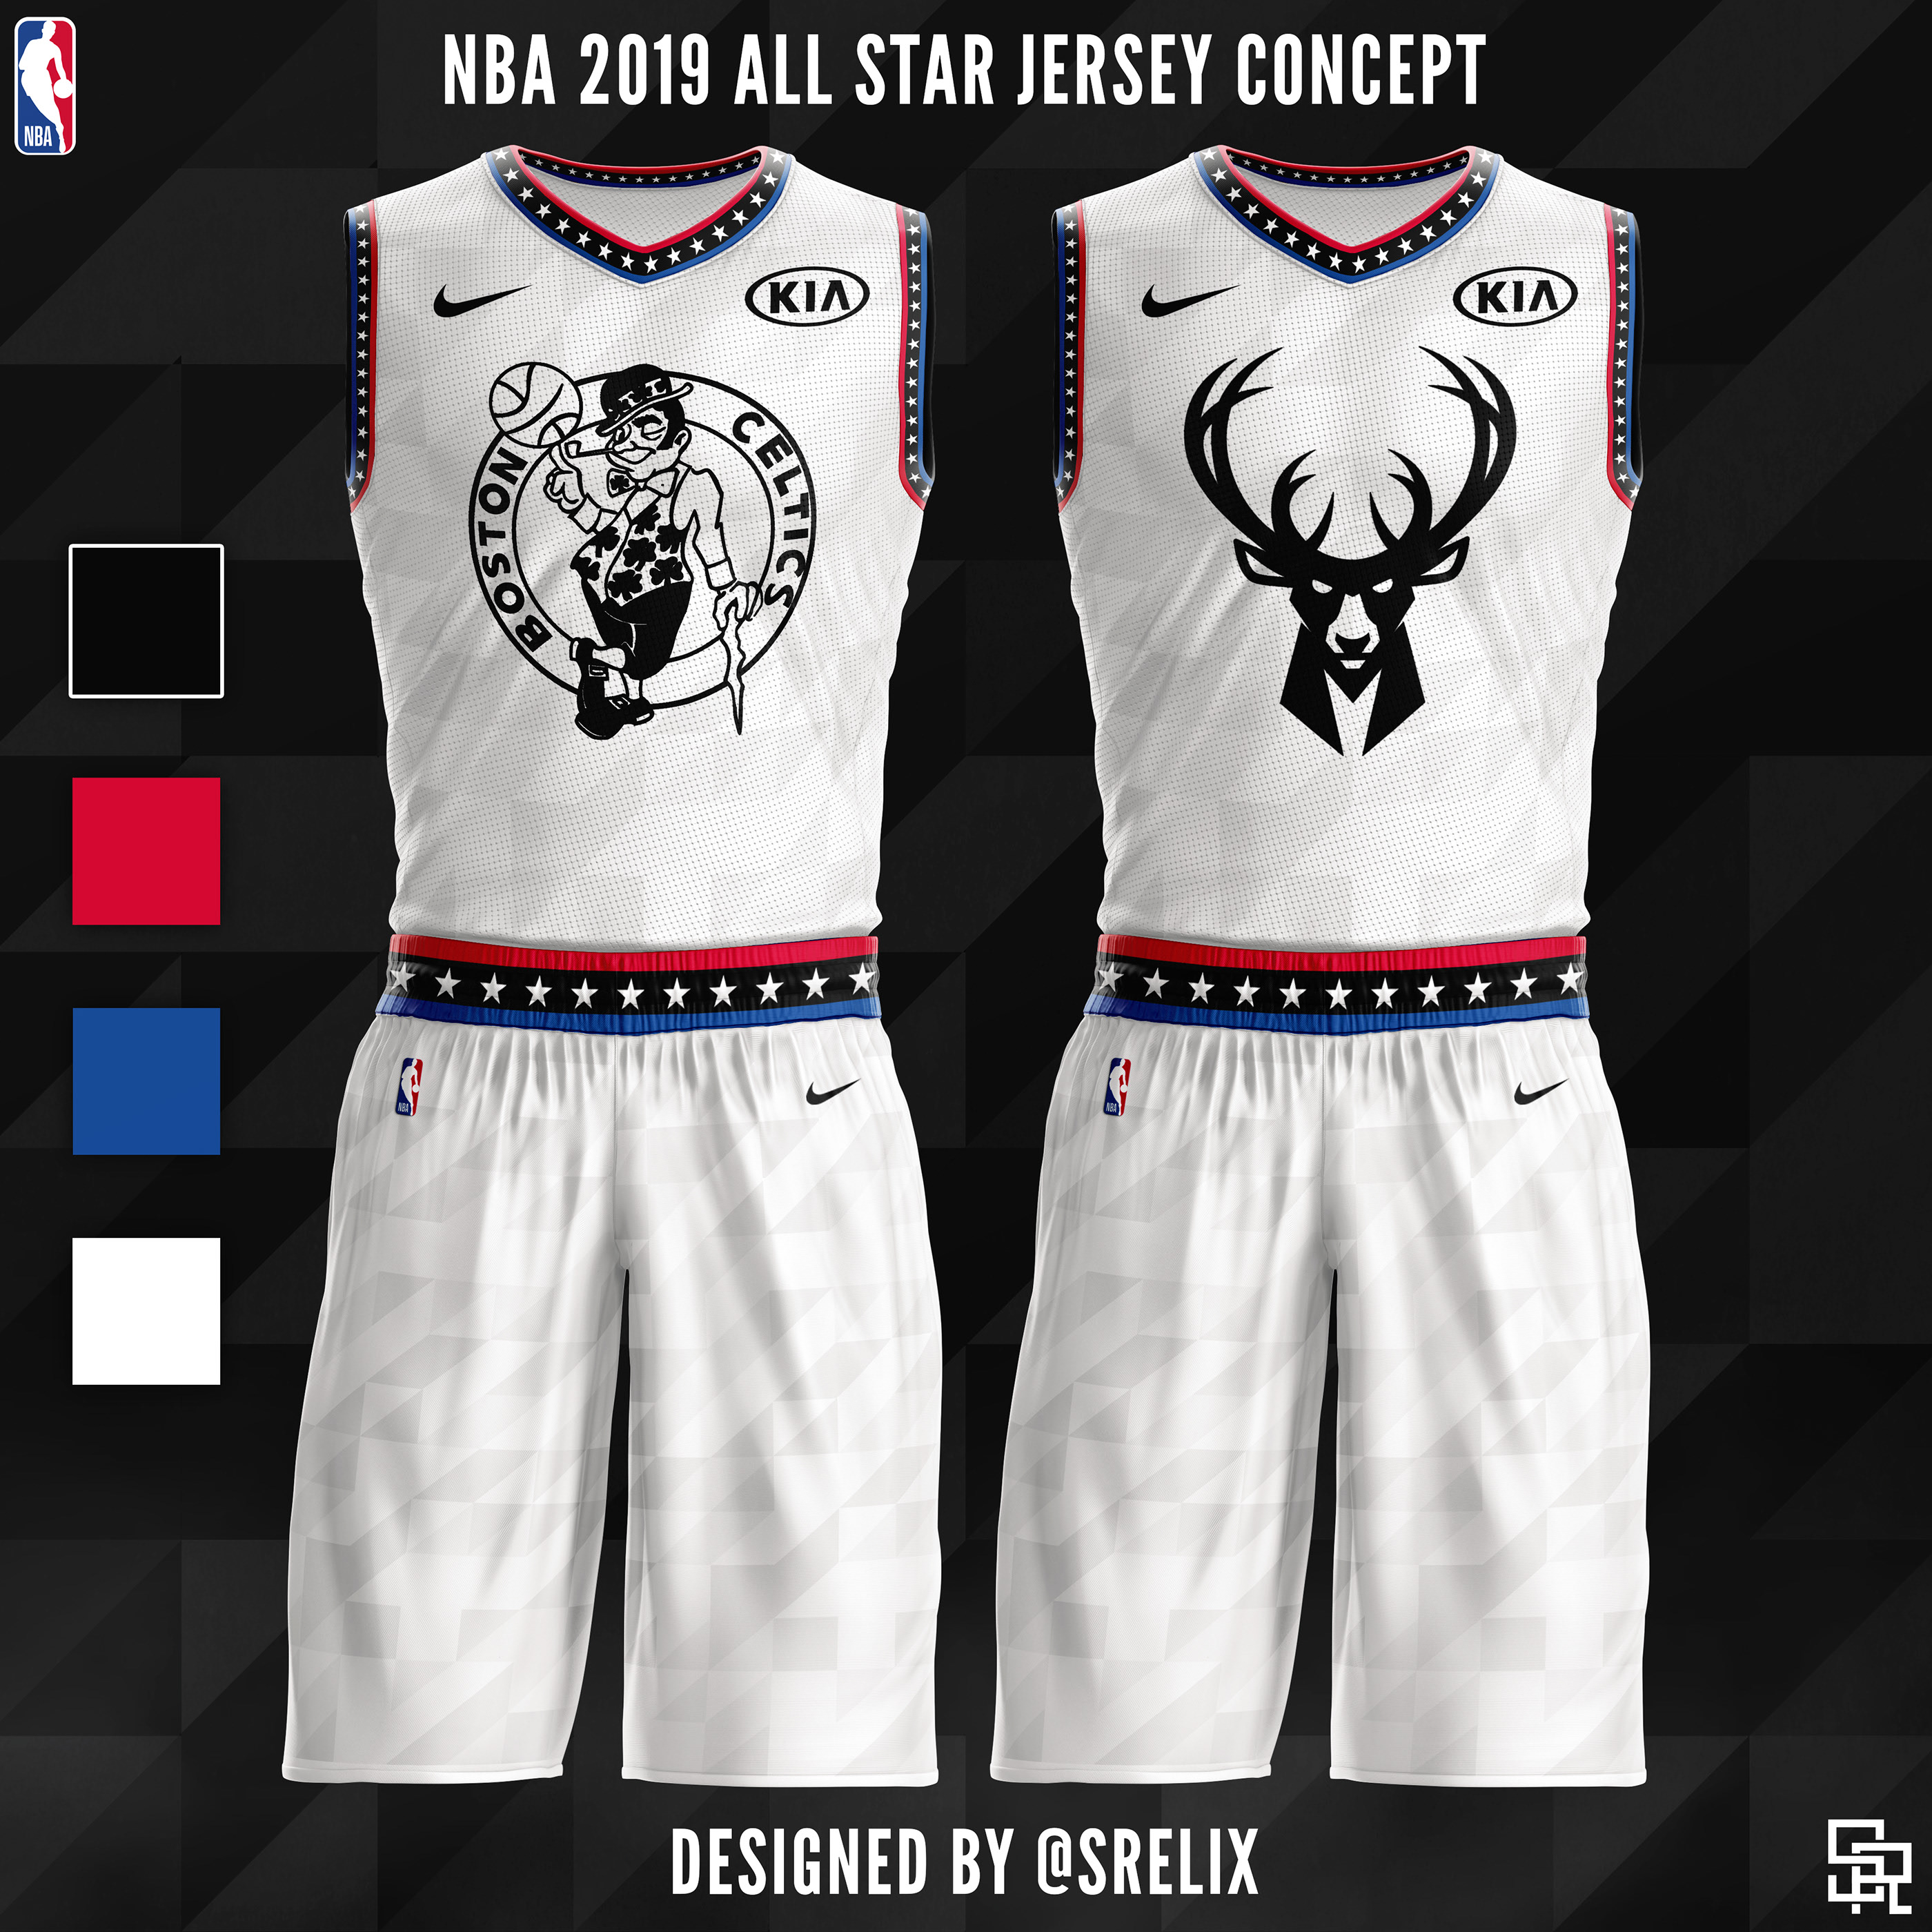 a1ae492b8ef NBA Jersey Concepts on Behance